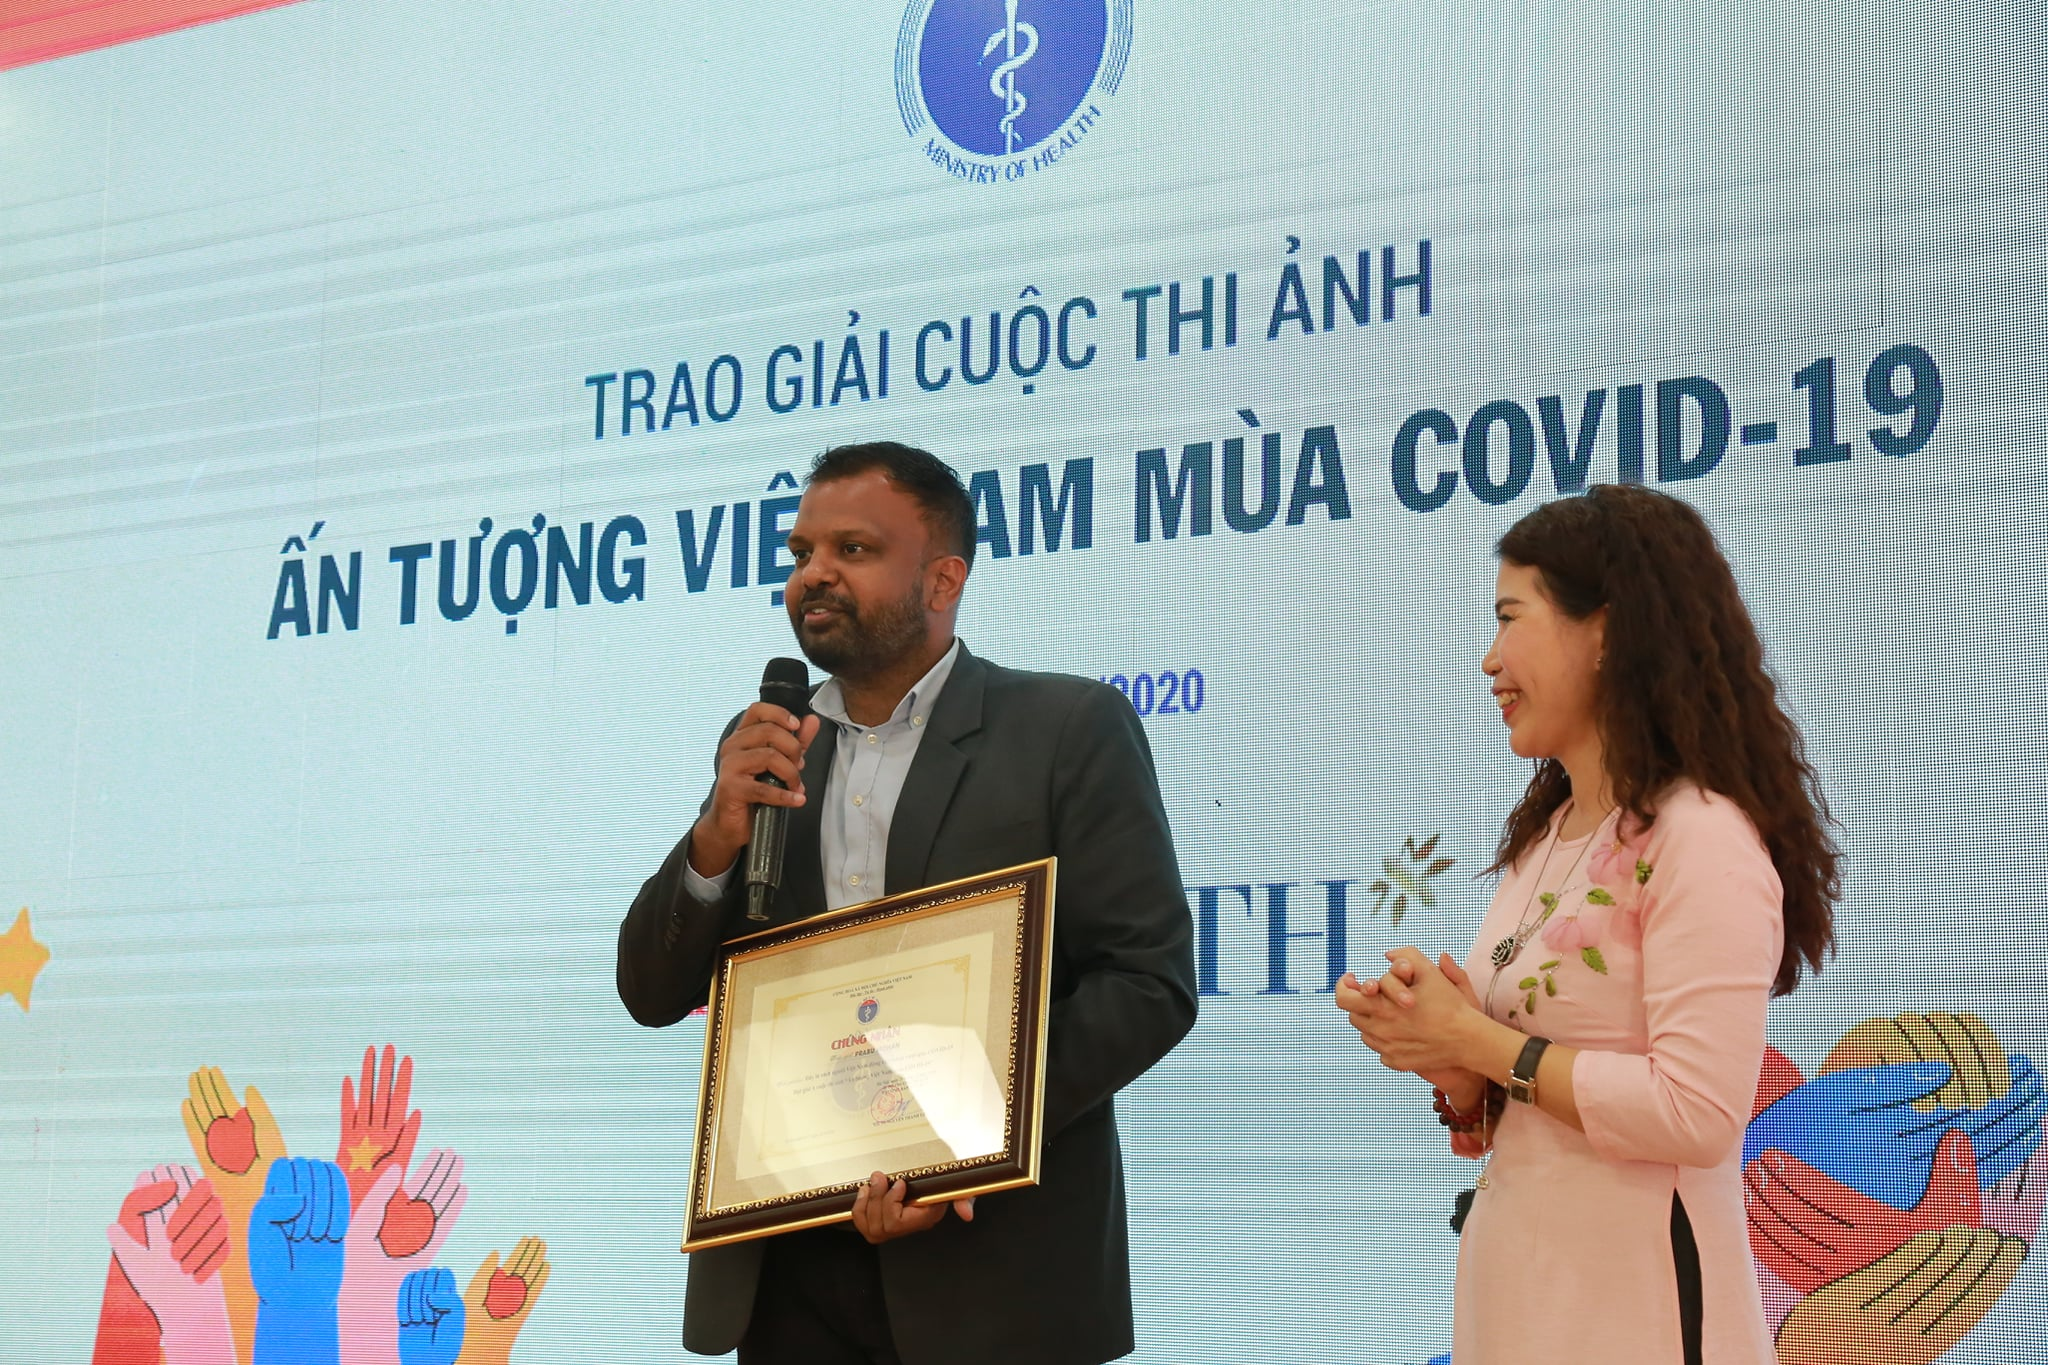 Prabu Mohan is seen receiving his award at the ceremony of a photo contest held by the Ministry of Health to celebrate Vietnam's impression during COVID-19 on October 23, 2020 in Hanoi in this photo published on the ministry's website.